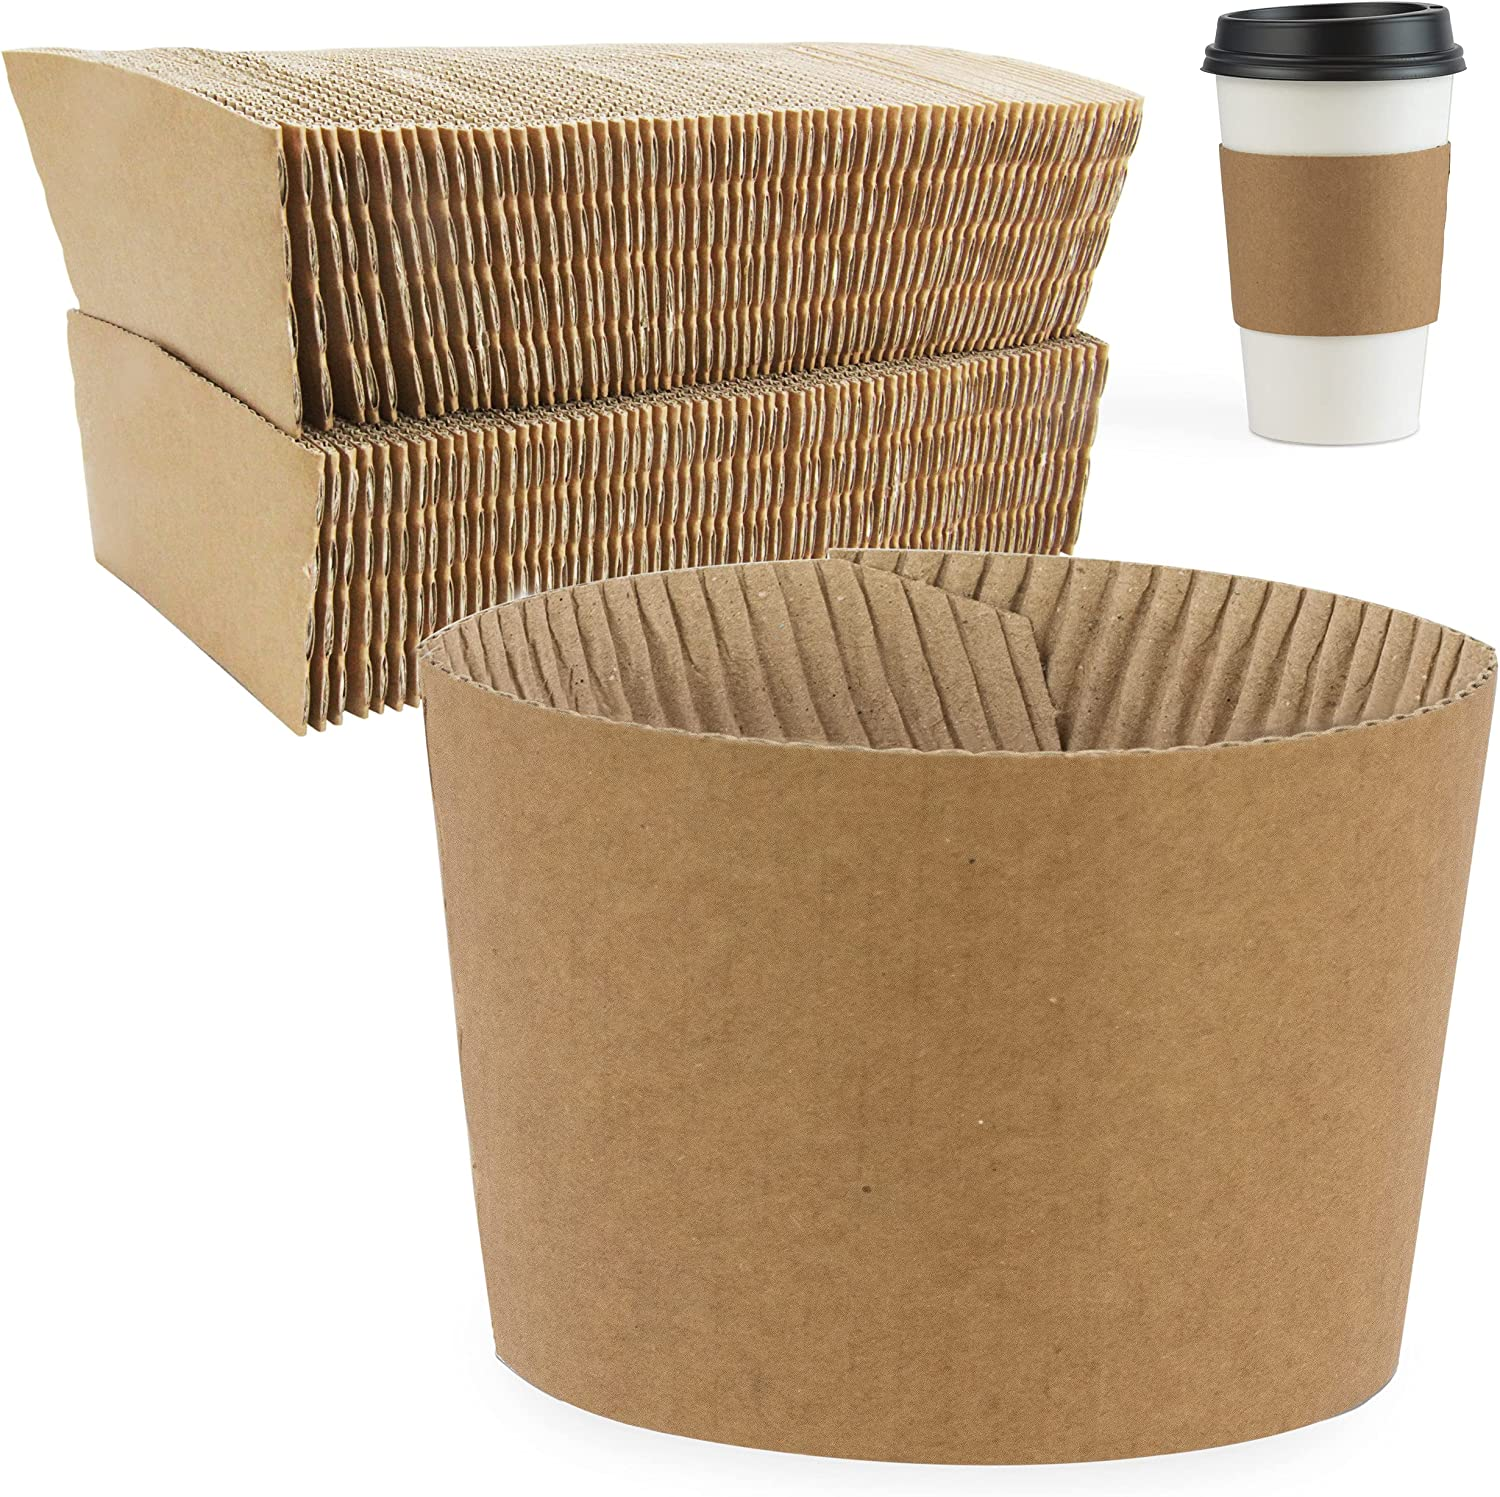 [100 Pack] Kraft Coffee Cup Sleeves - Brown Disposable Corrugated Cardboard Paper Jacket, Holds Hot and Cold Drinks, Espresso Coffee Milk Tea Beverage Insulator and Hand Protection